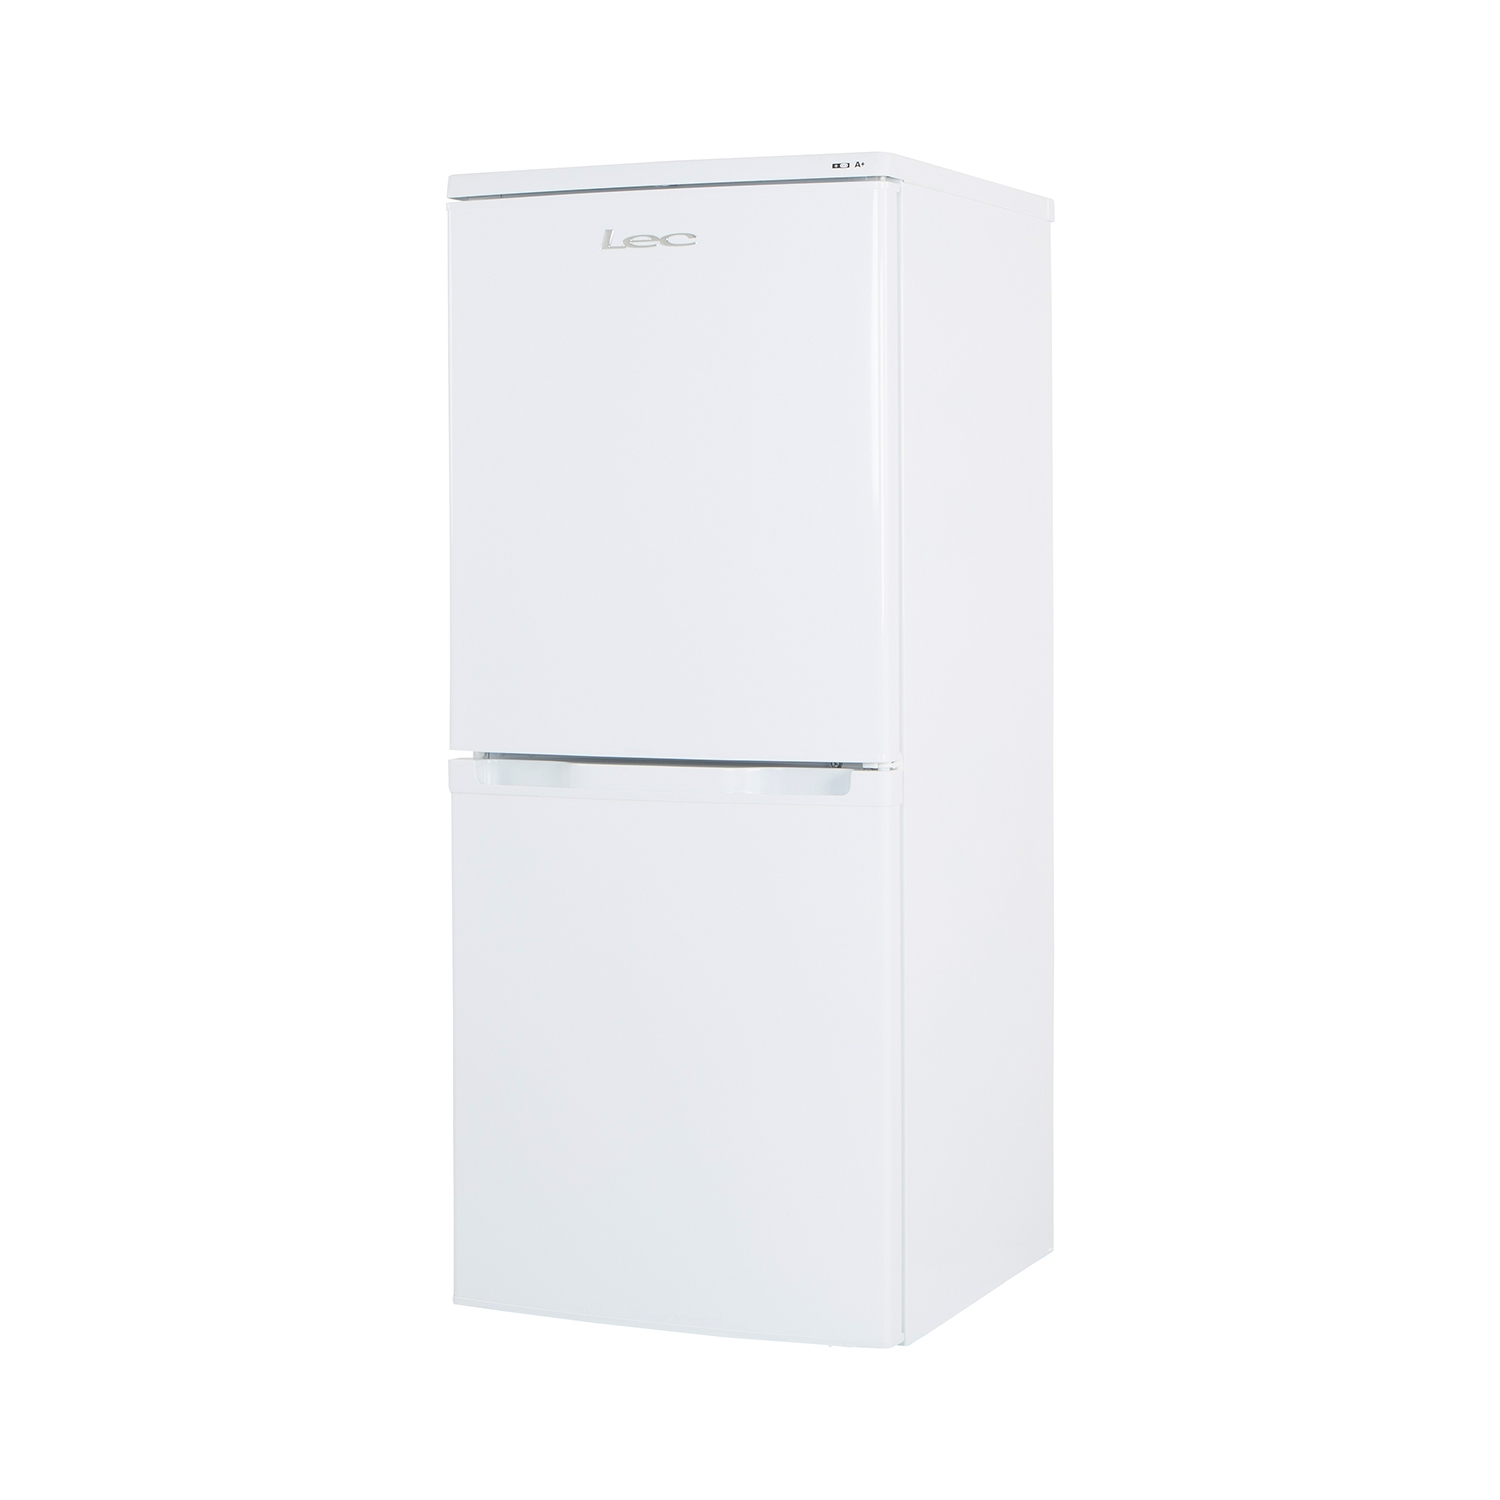 Lec 50cm Fridge Freezer - White - A+ Rated - 3